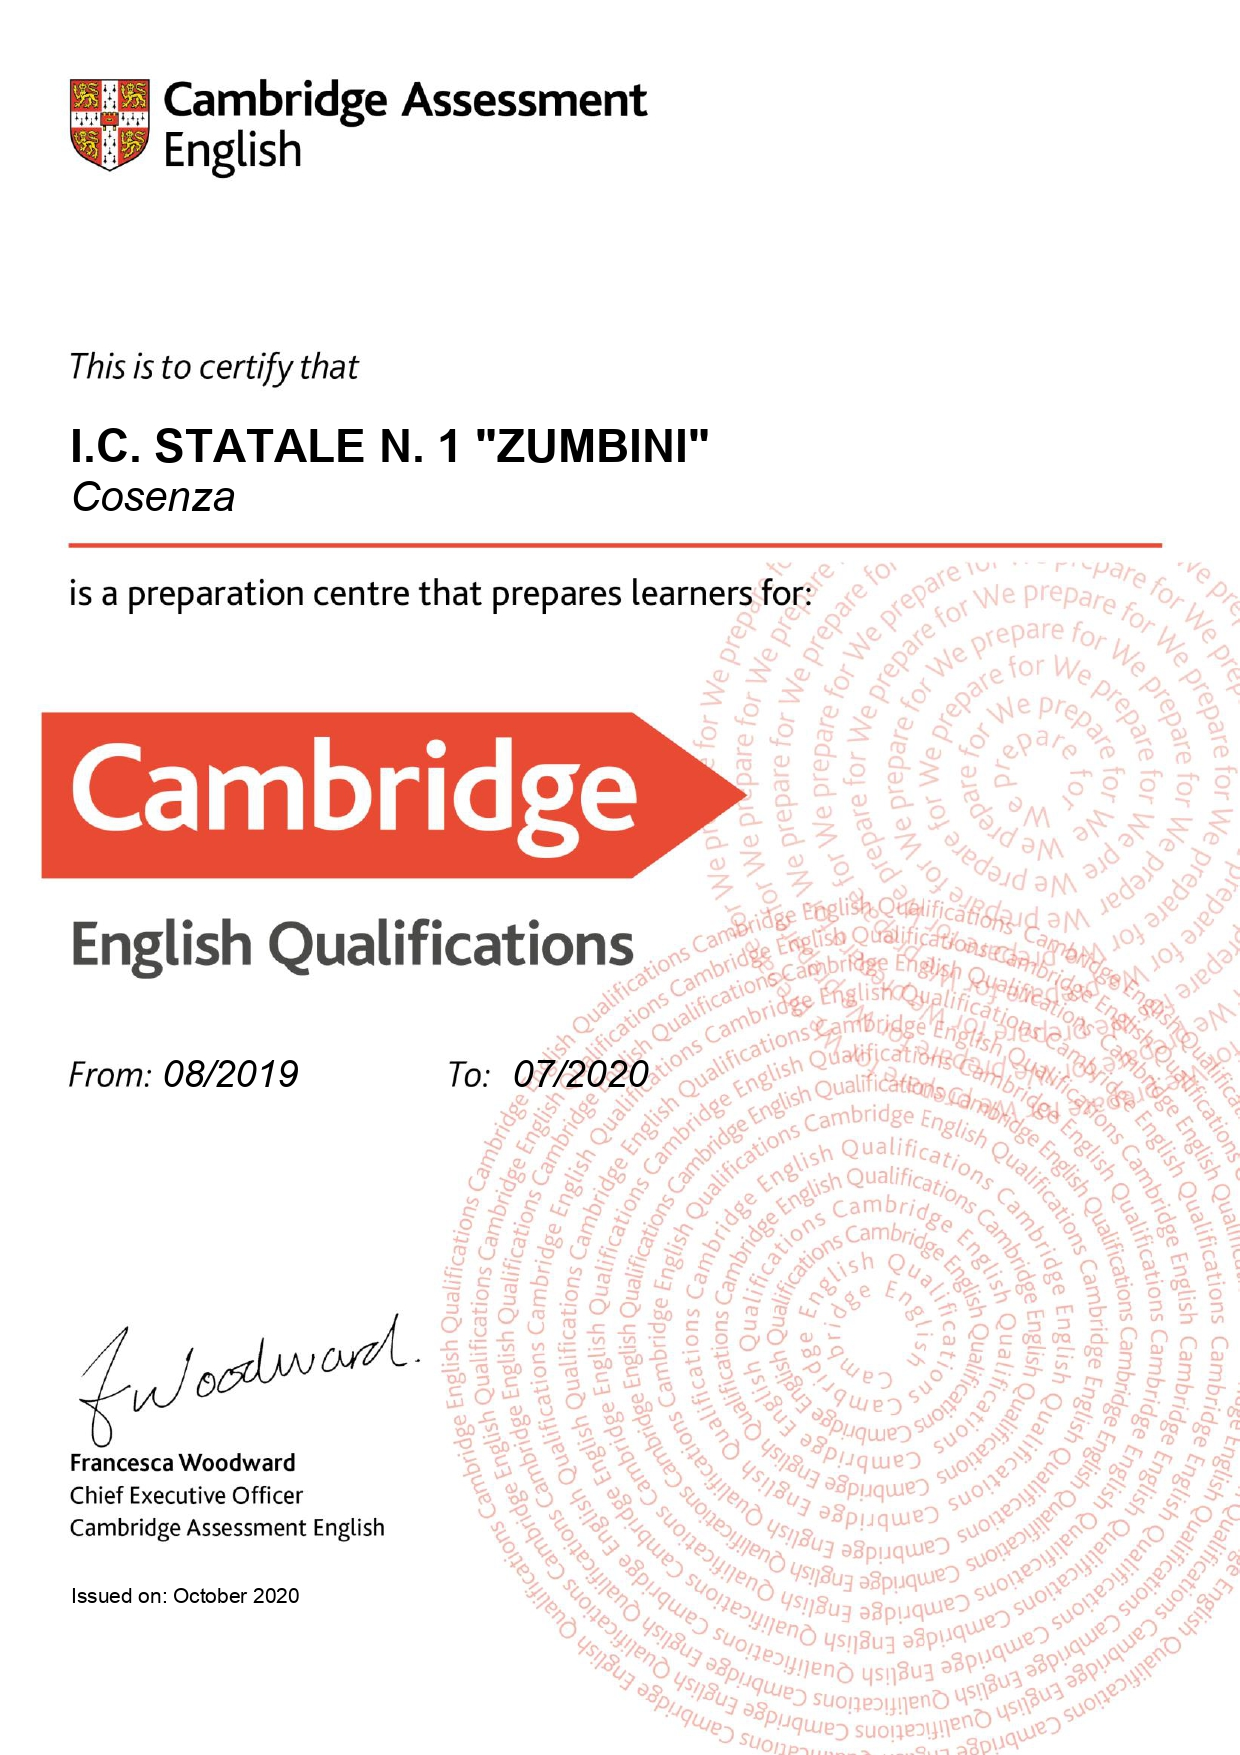 Certificato di Preparation Centre Cambridge